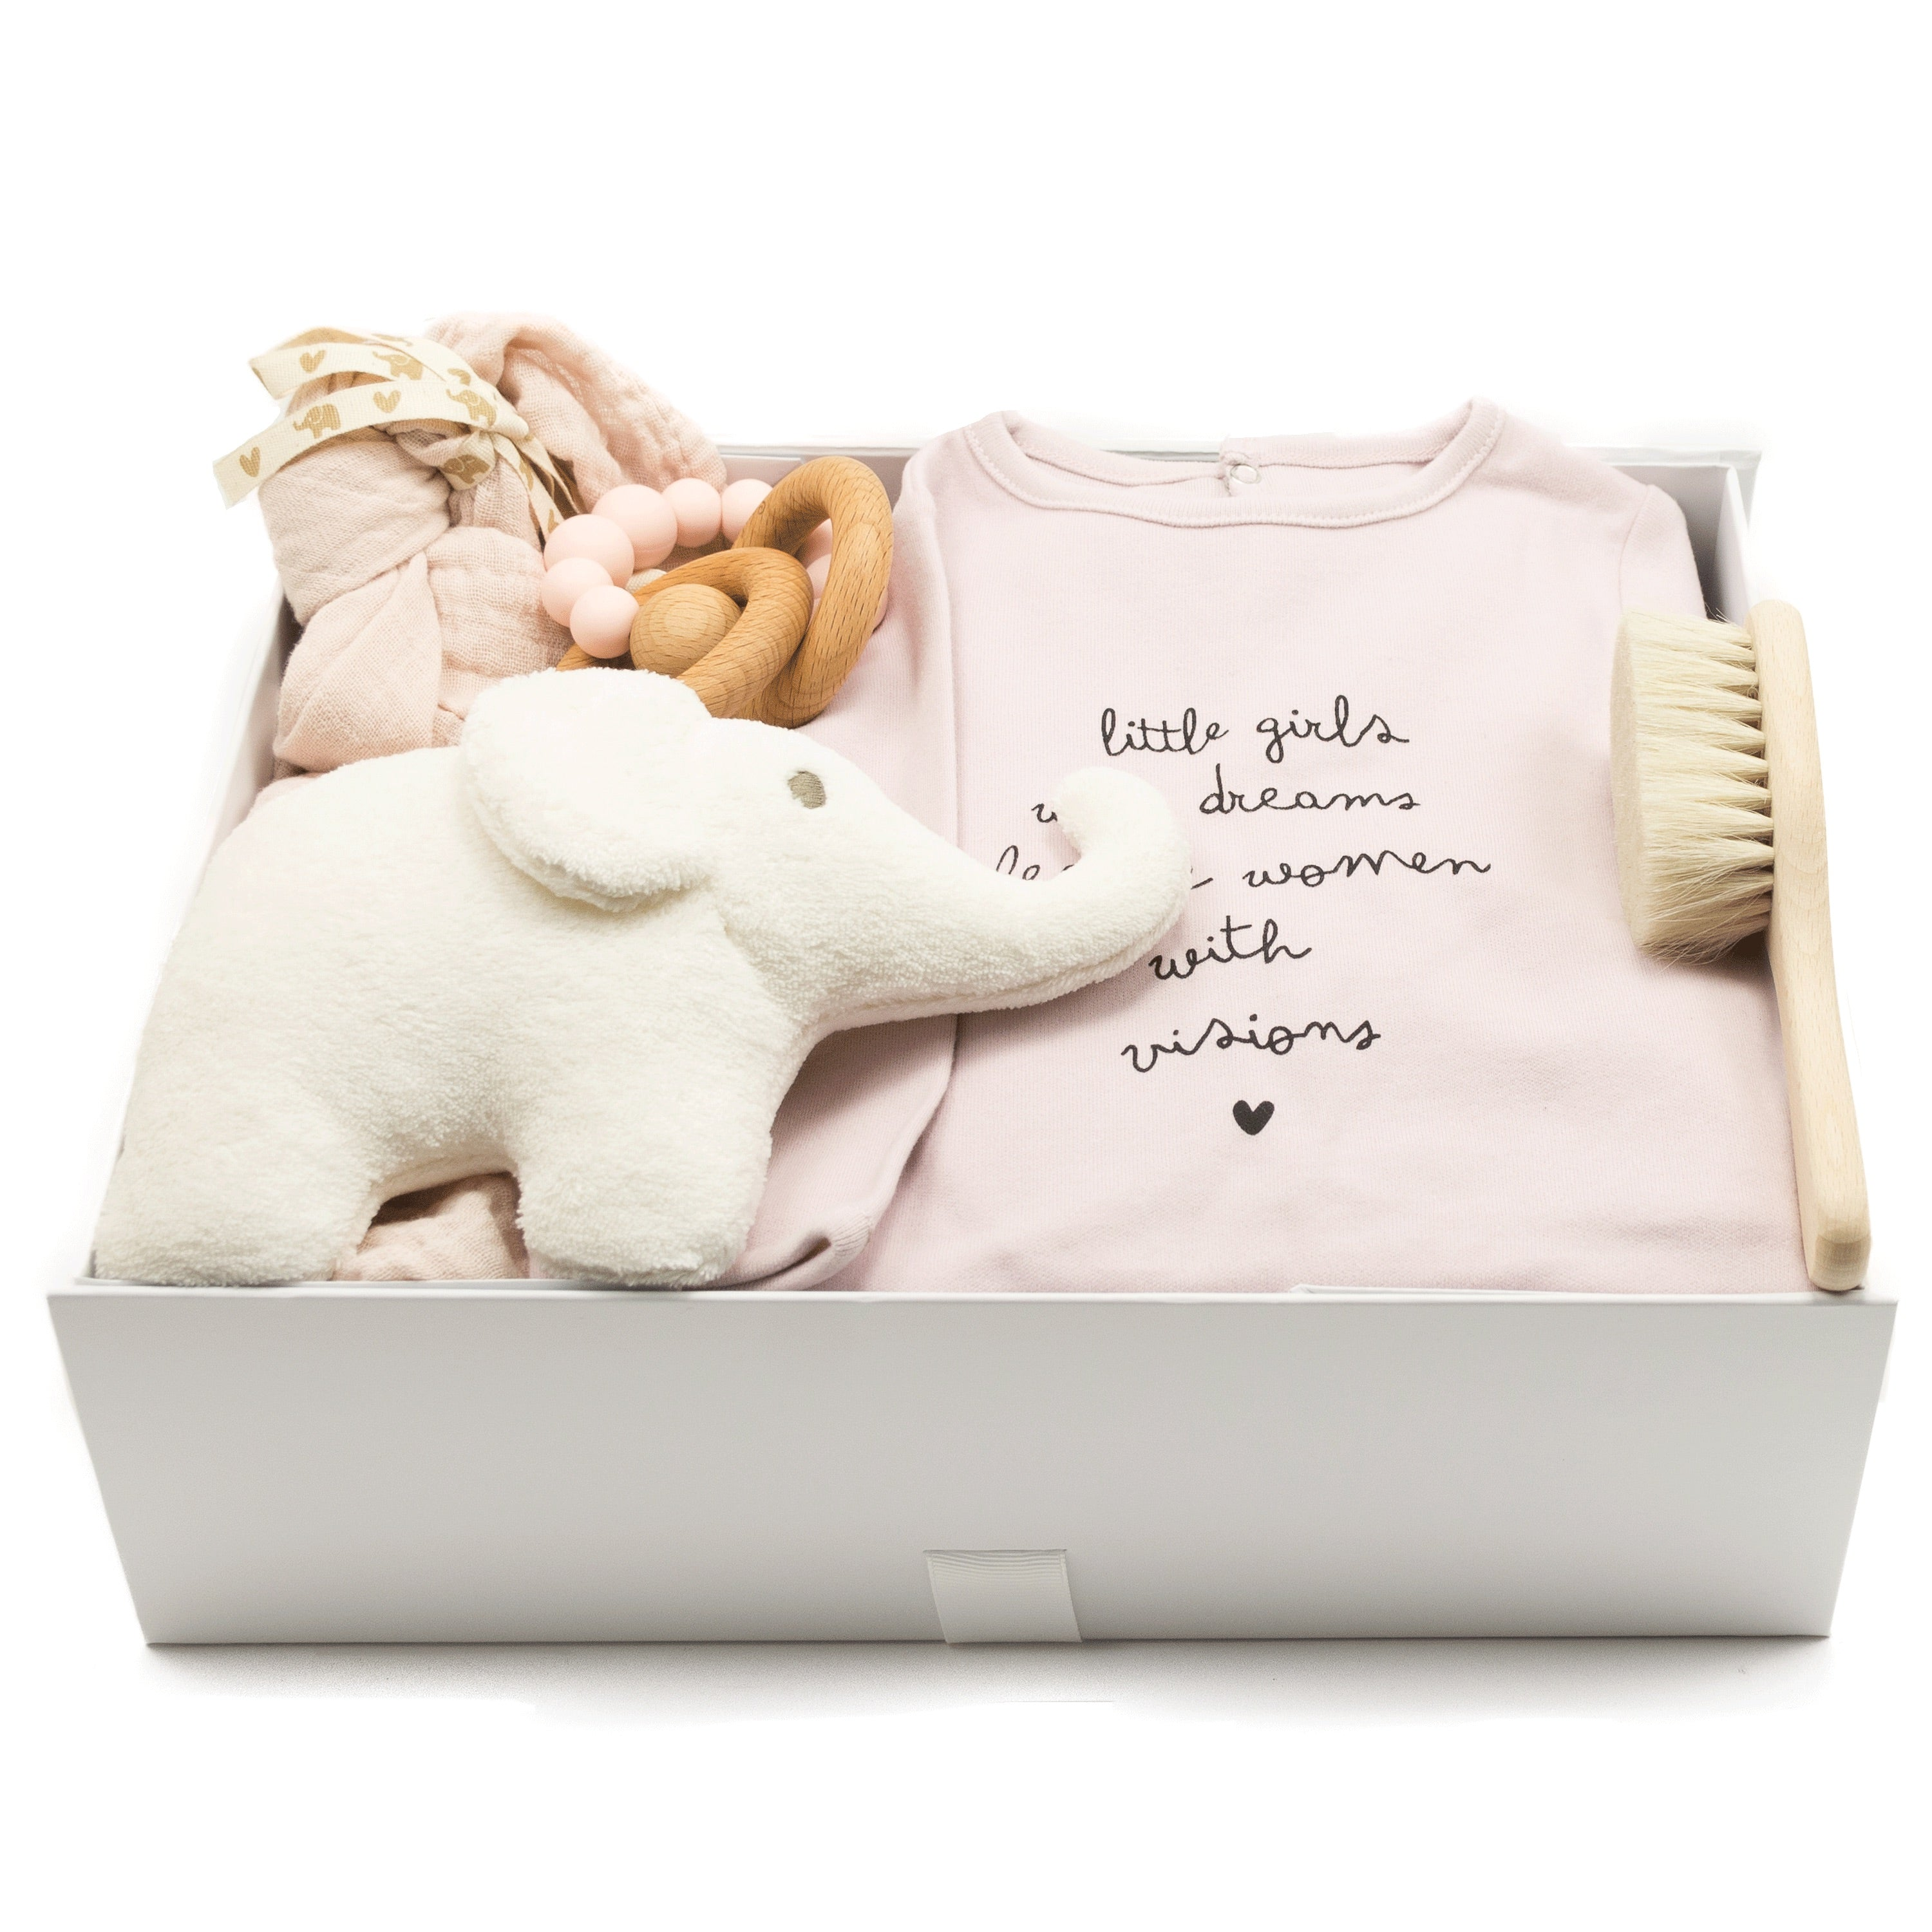 https://bonjourbabybaskets.com/collections/baby-gift-sets-1